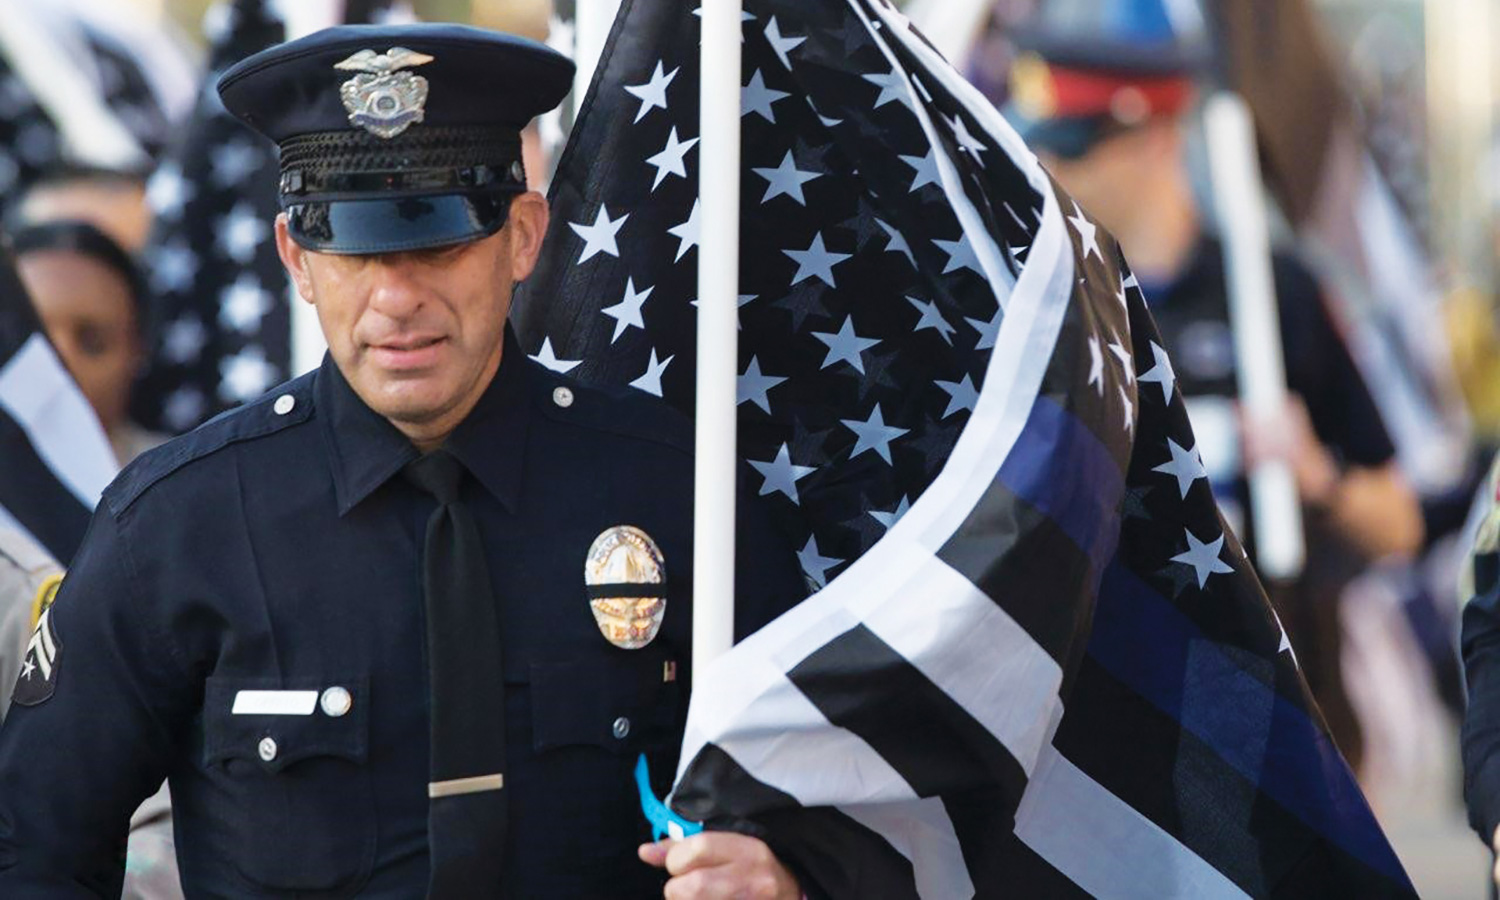 LAPD officer pays tribute to heroes and remembers the friend who changed  his life